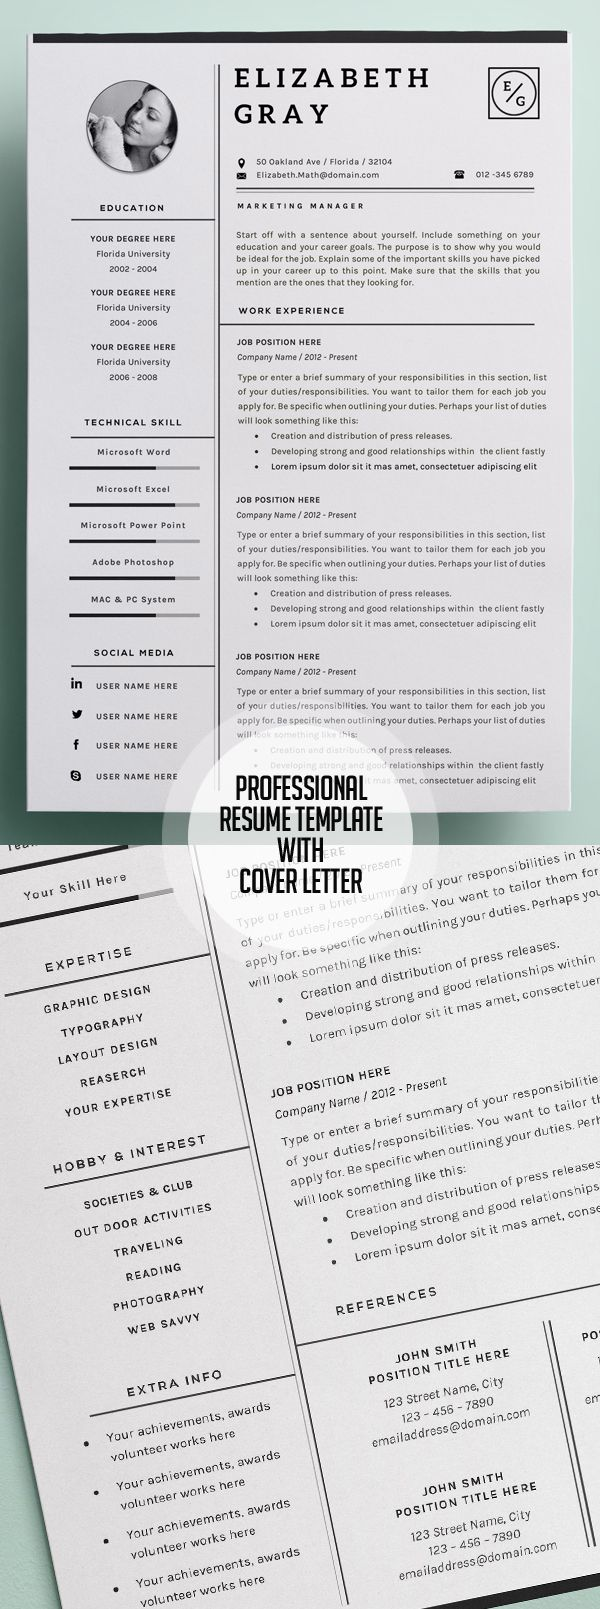 Picnictoimpeachus  Prepossessing  Resume Ideas On Pinterest  Resume Resume Templates And  With Great Professional And Modern Resume Template With Page Cover Cvtemplate With Amusing The Best Resume Format Also Program Coordinator Resume In Addition Skills For Job Resume And Resume Qualifications Examples As Well As Concierge Resume Additionally Customer Service Supervisor Resume From Pinterestcom With Picnictoimpeachus  Great  Resume Ideas On Pinterest  Resume Resume Templates And  With Amusing Professional And Modern Resume Template With Page Cover Cvtemplate And Prepossessing The Best Resume Format Also Program Coordinator Resume In Addition Skills For Job Resume From Pinterestcom